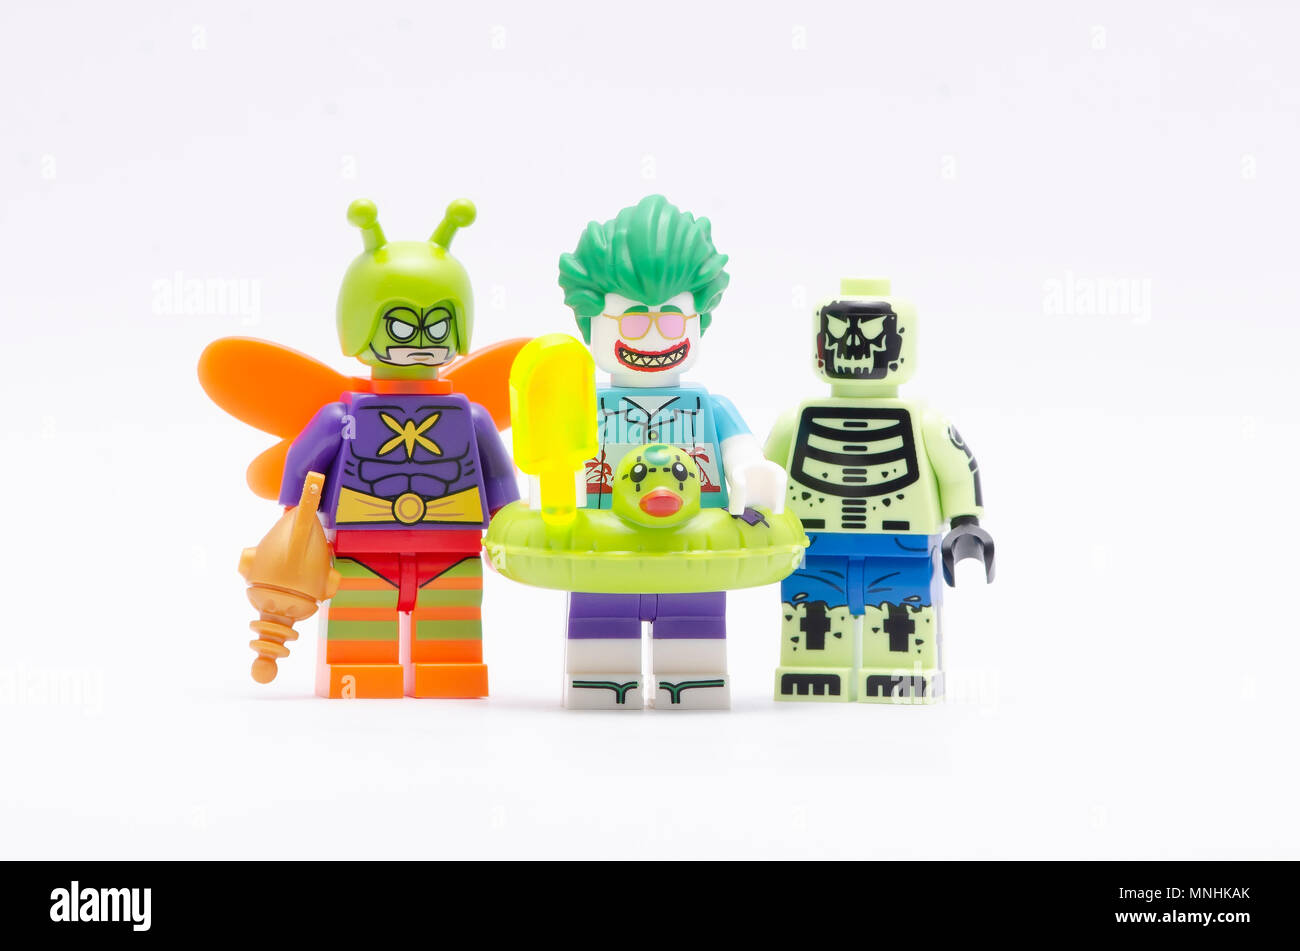 mini figure of killer moth, Doctor Phosphorus and joker . Lego minifigures are manufactured by The Lego Group. - Stock Image